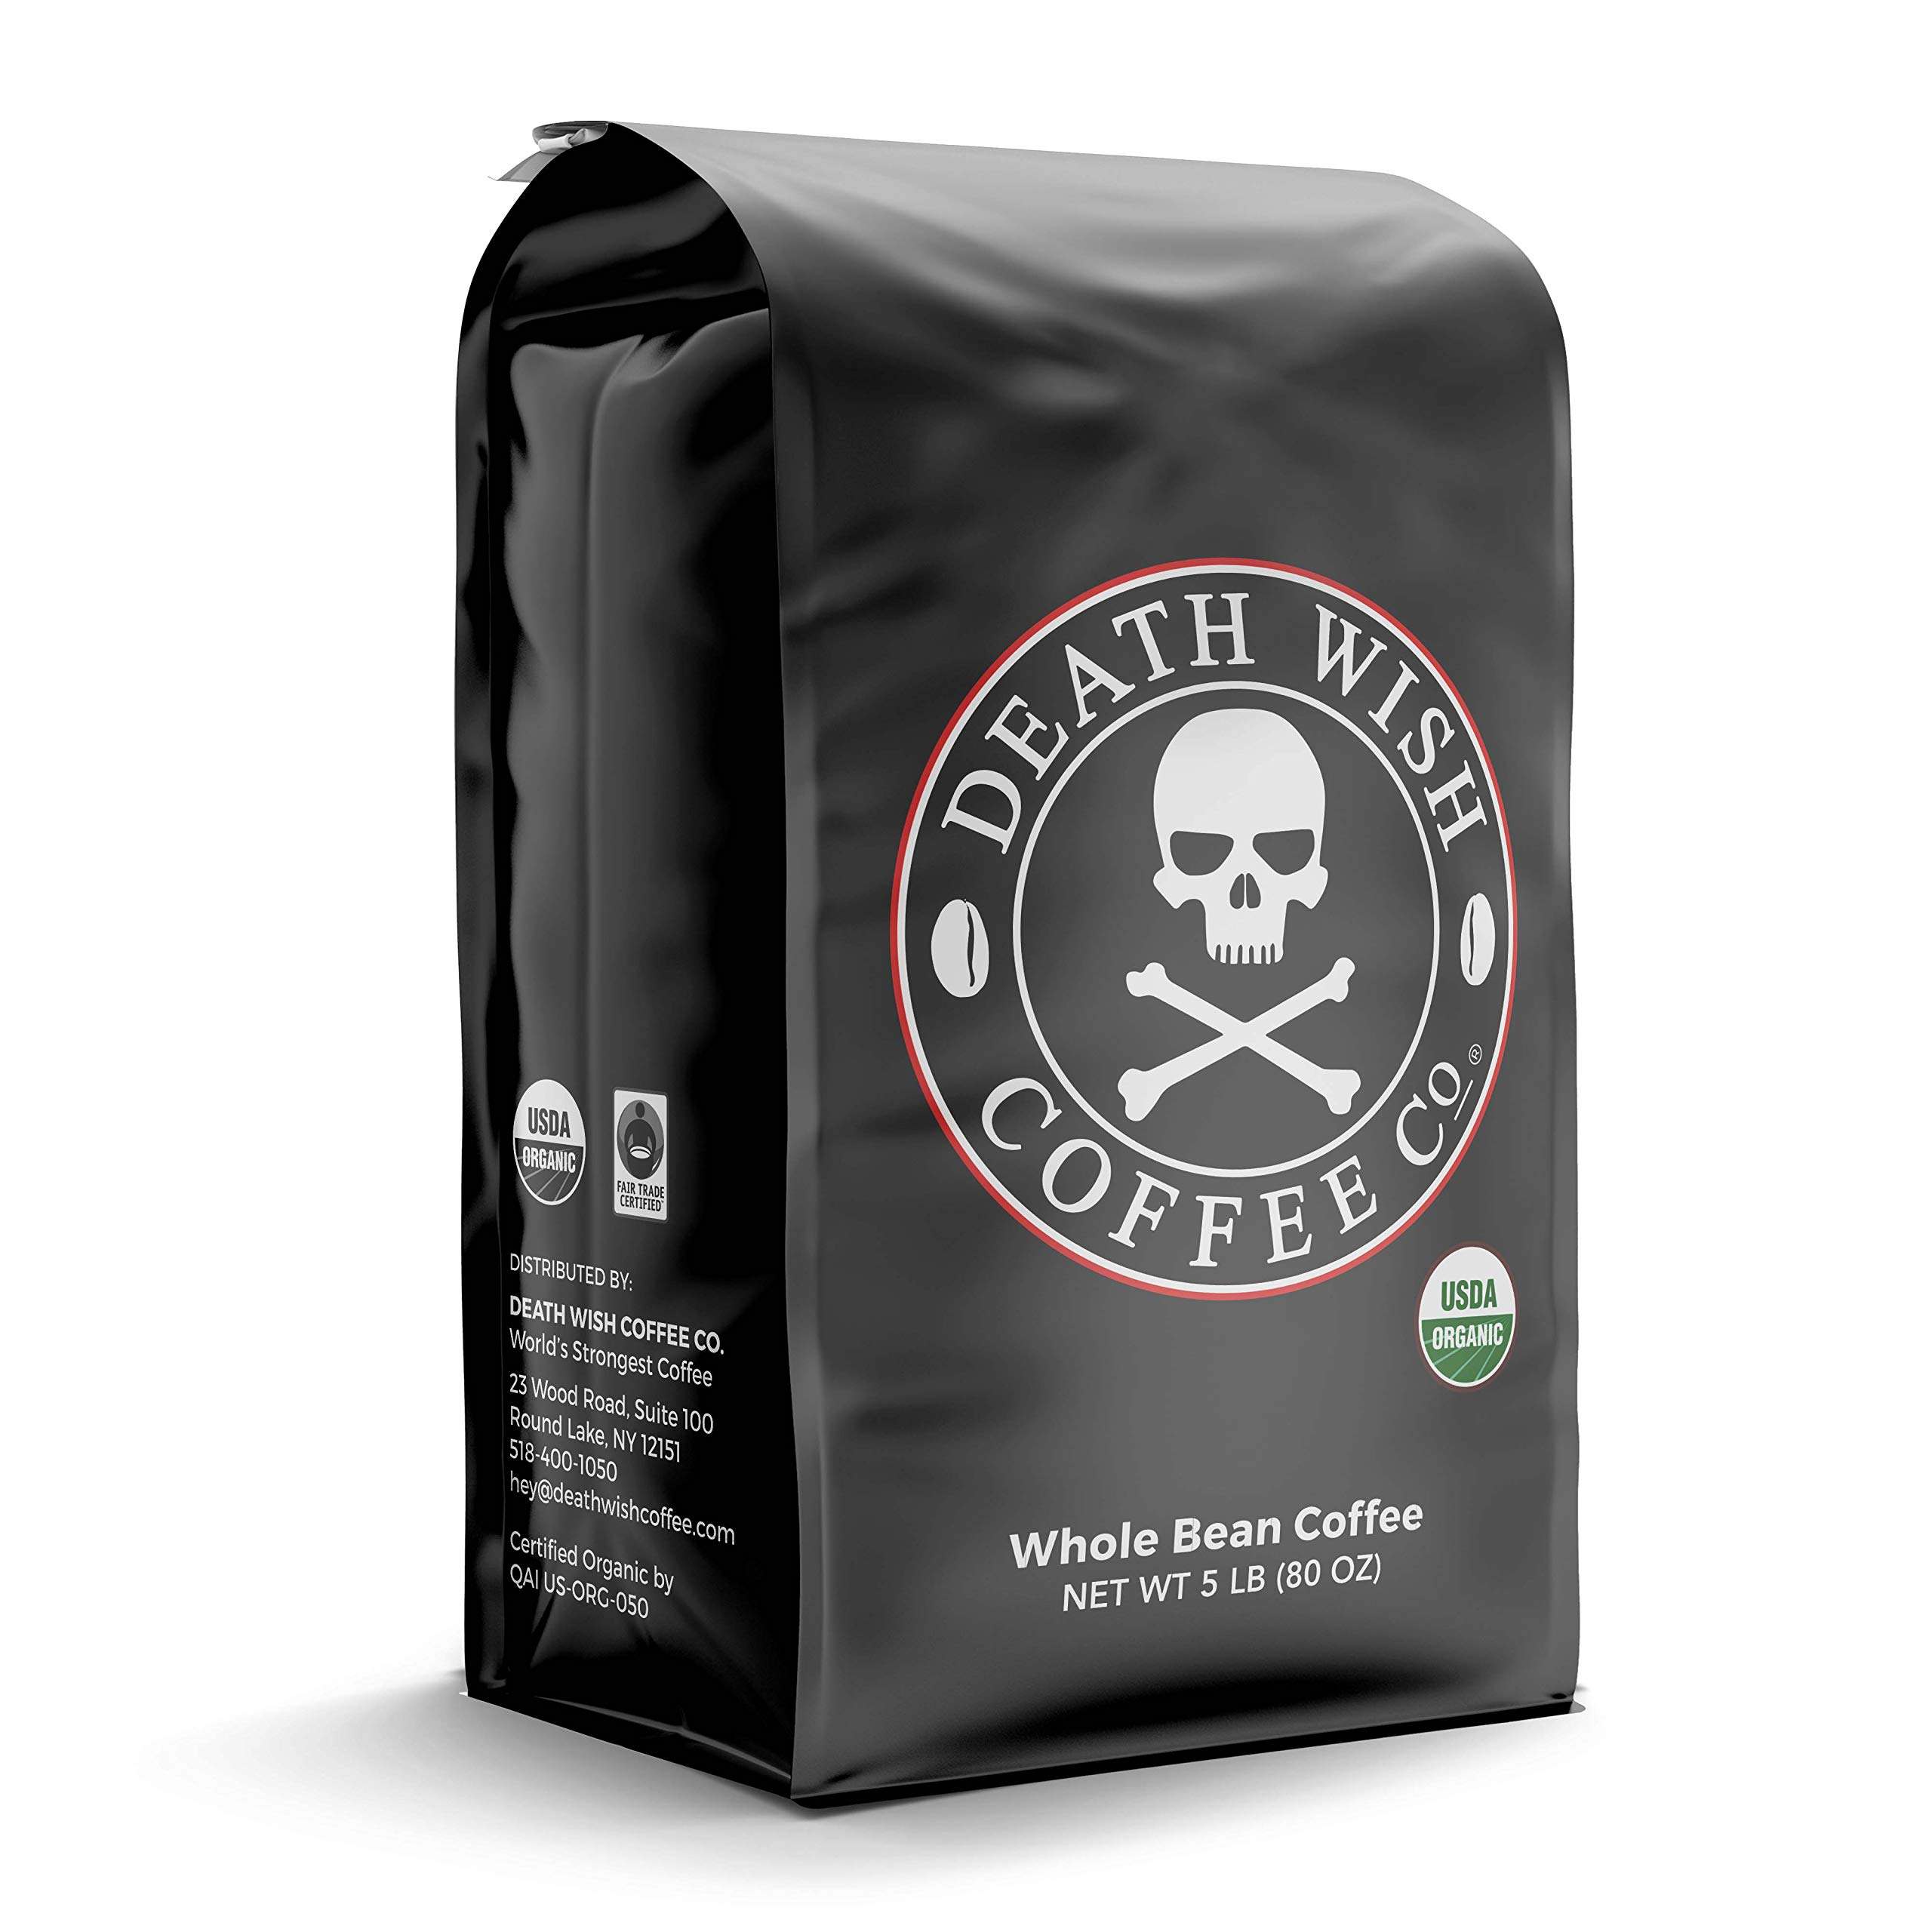 DEATH WISH COFFEE Whole Bean Coffee [5 Lbs.] The World's Strongest Coffee, USDA Certified Organic, Fair Trade, Arabica and Robusta Beans (1-Pack)